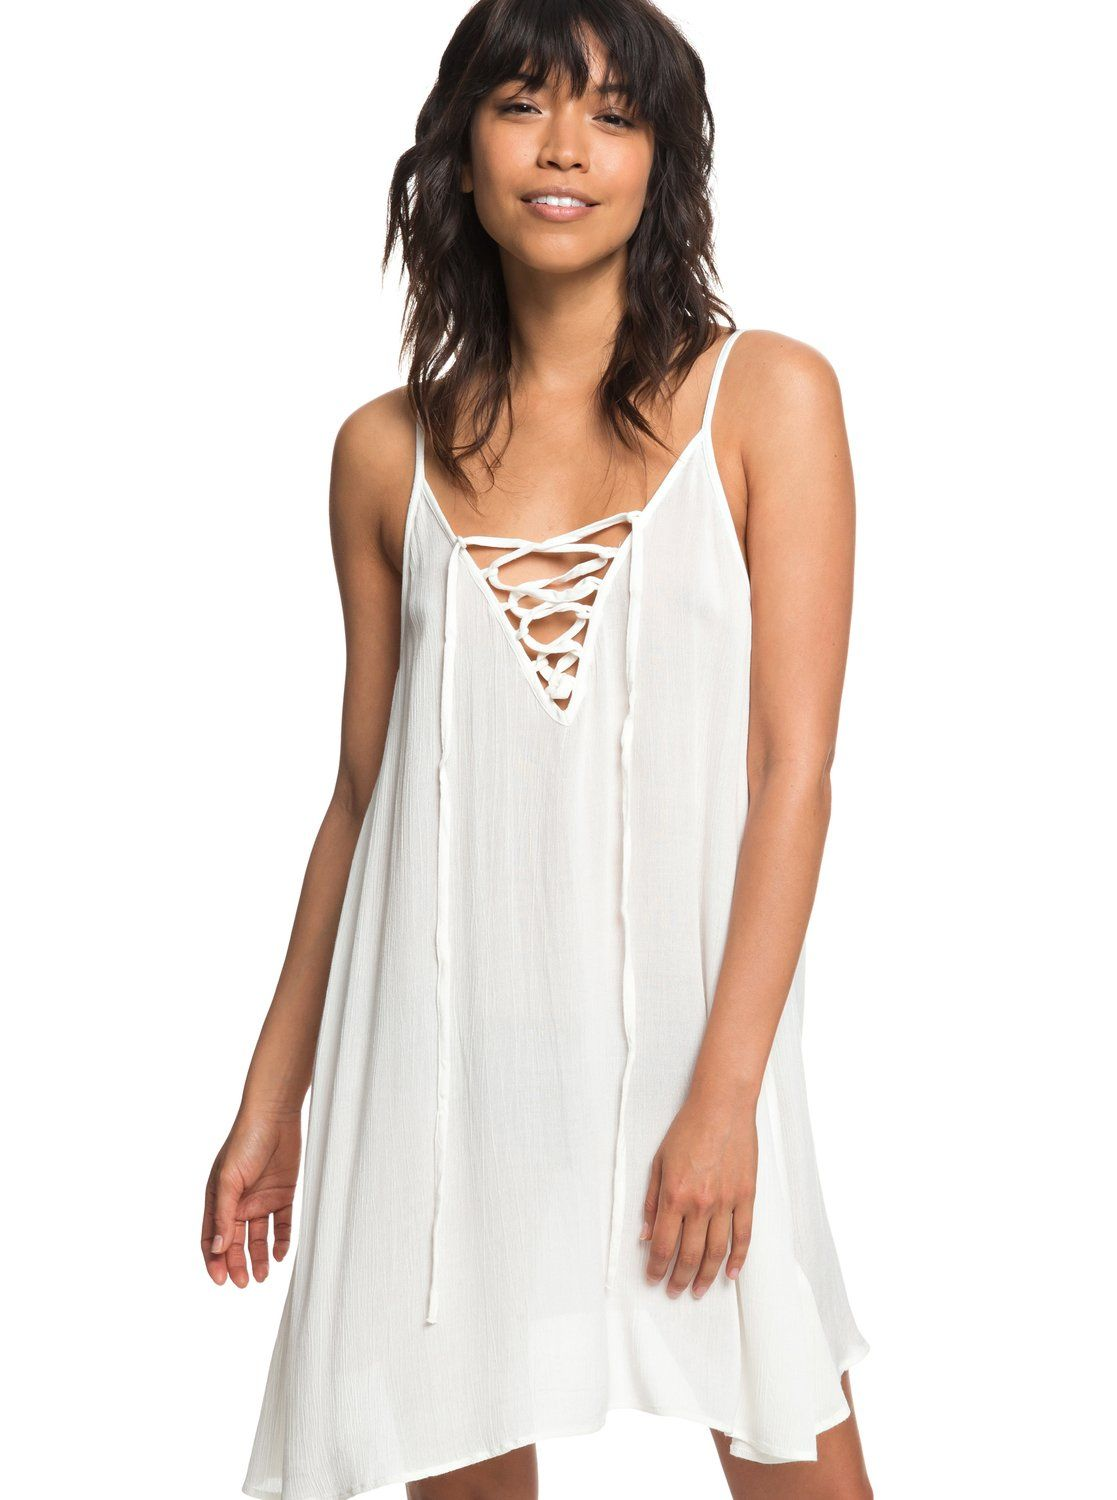 8a2621c2dd Softly Love Strappy Dress | Hawaii | Dresses, Fashion, Surf outfit